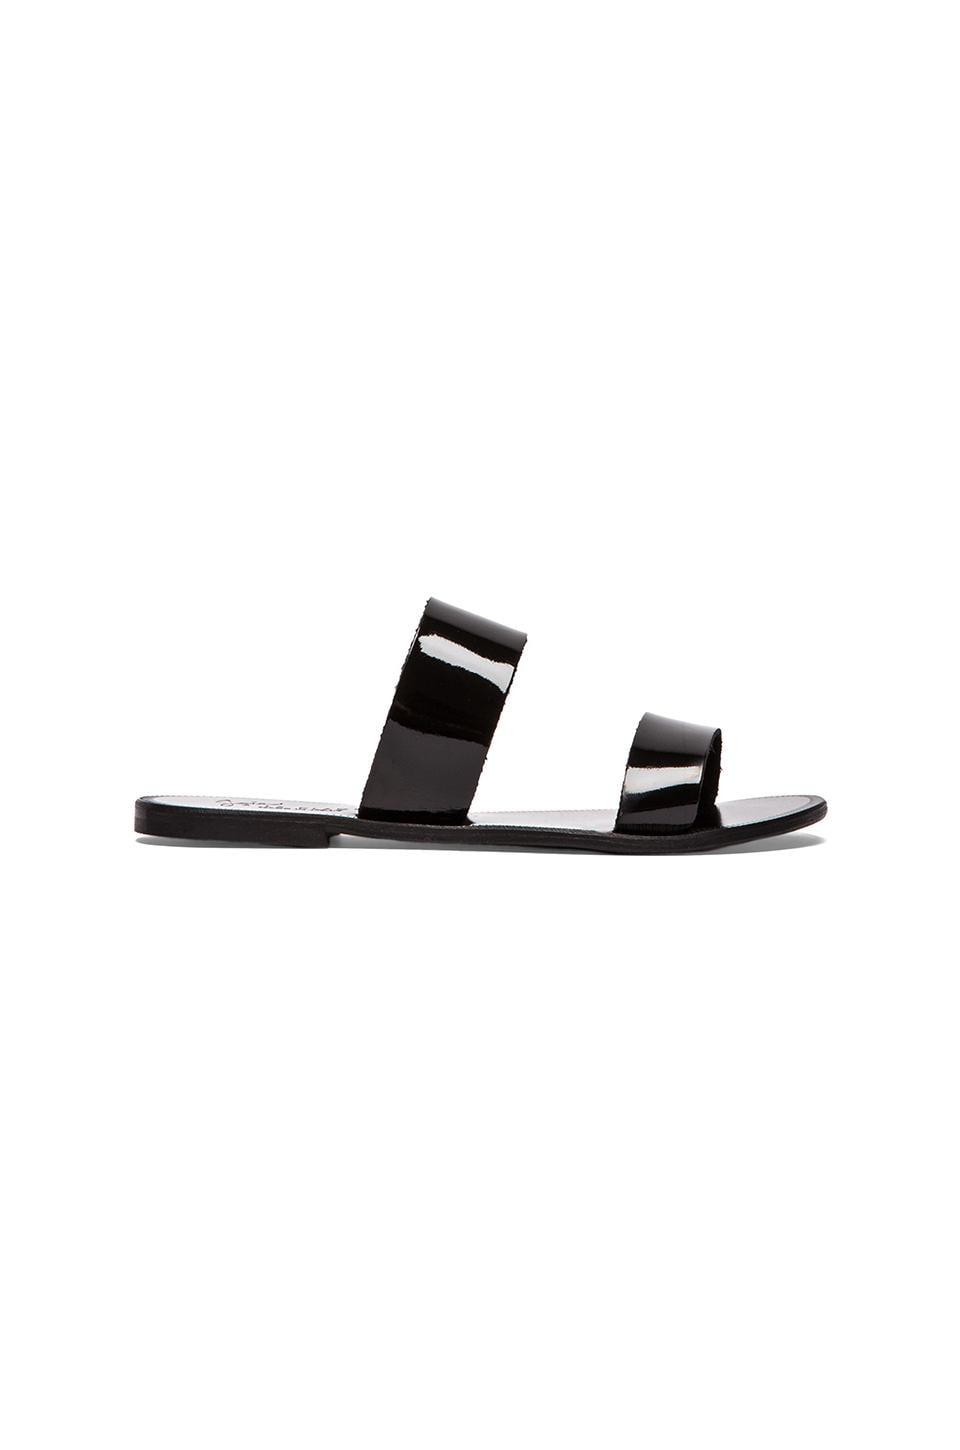 Joie A La Plage Sable Flat in Black & Black